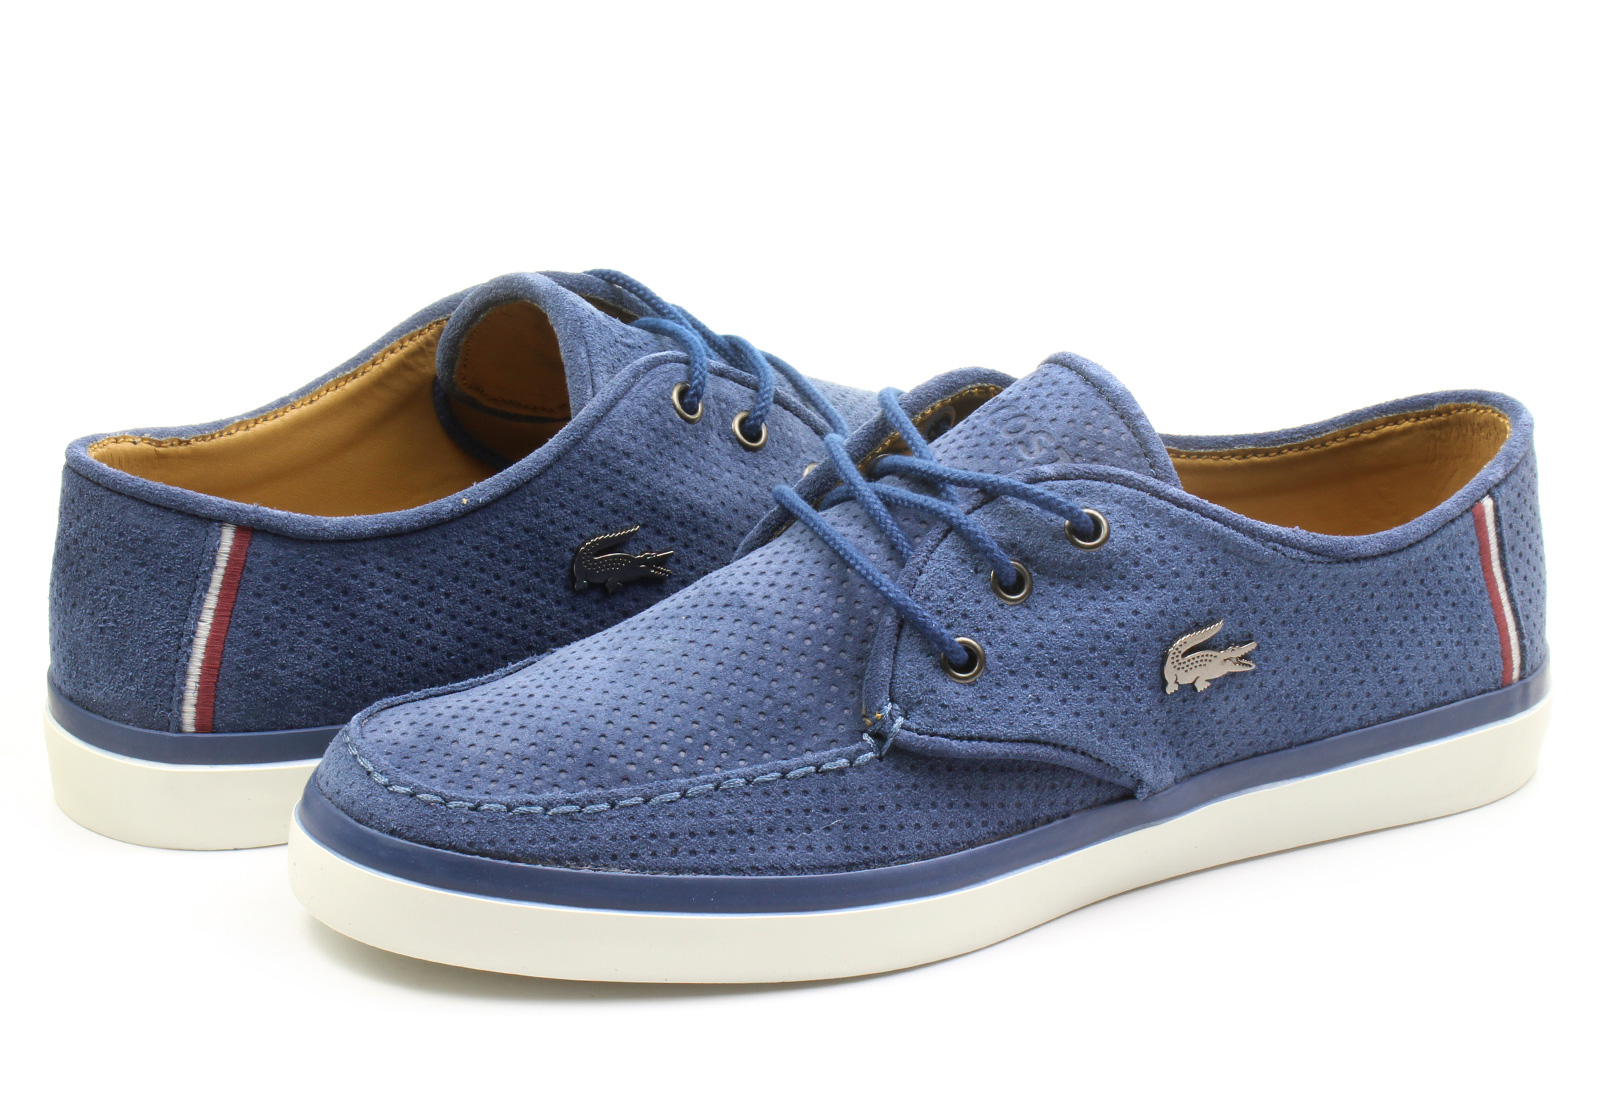 Where To Buy Lacoste Shoes